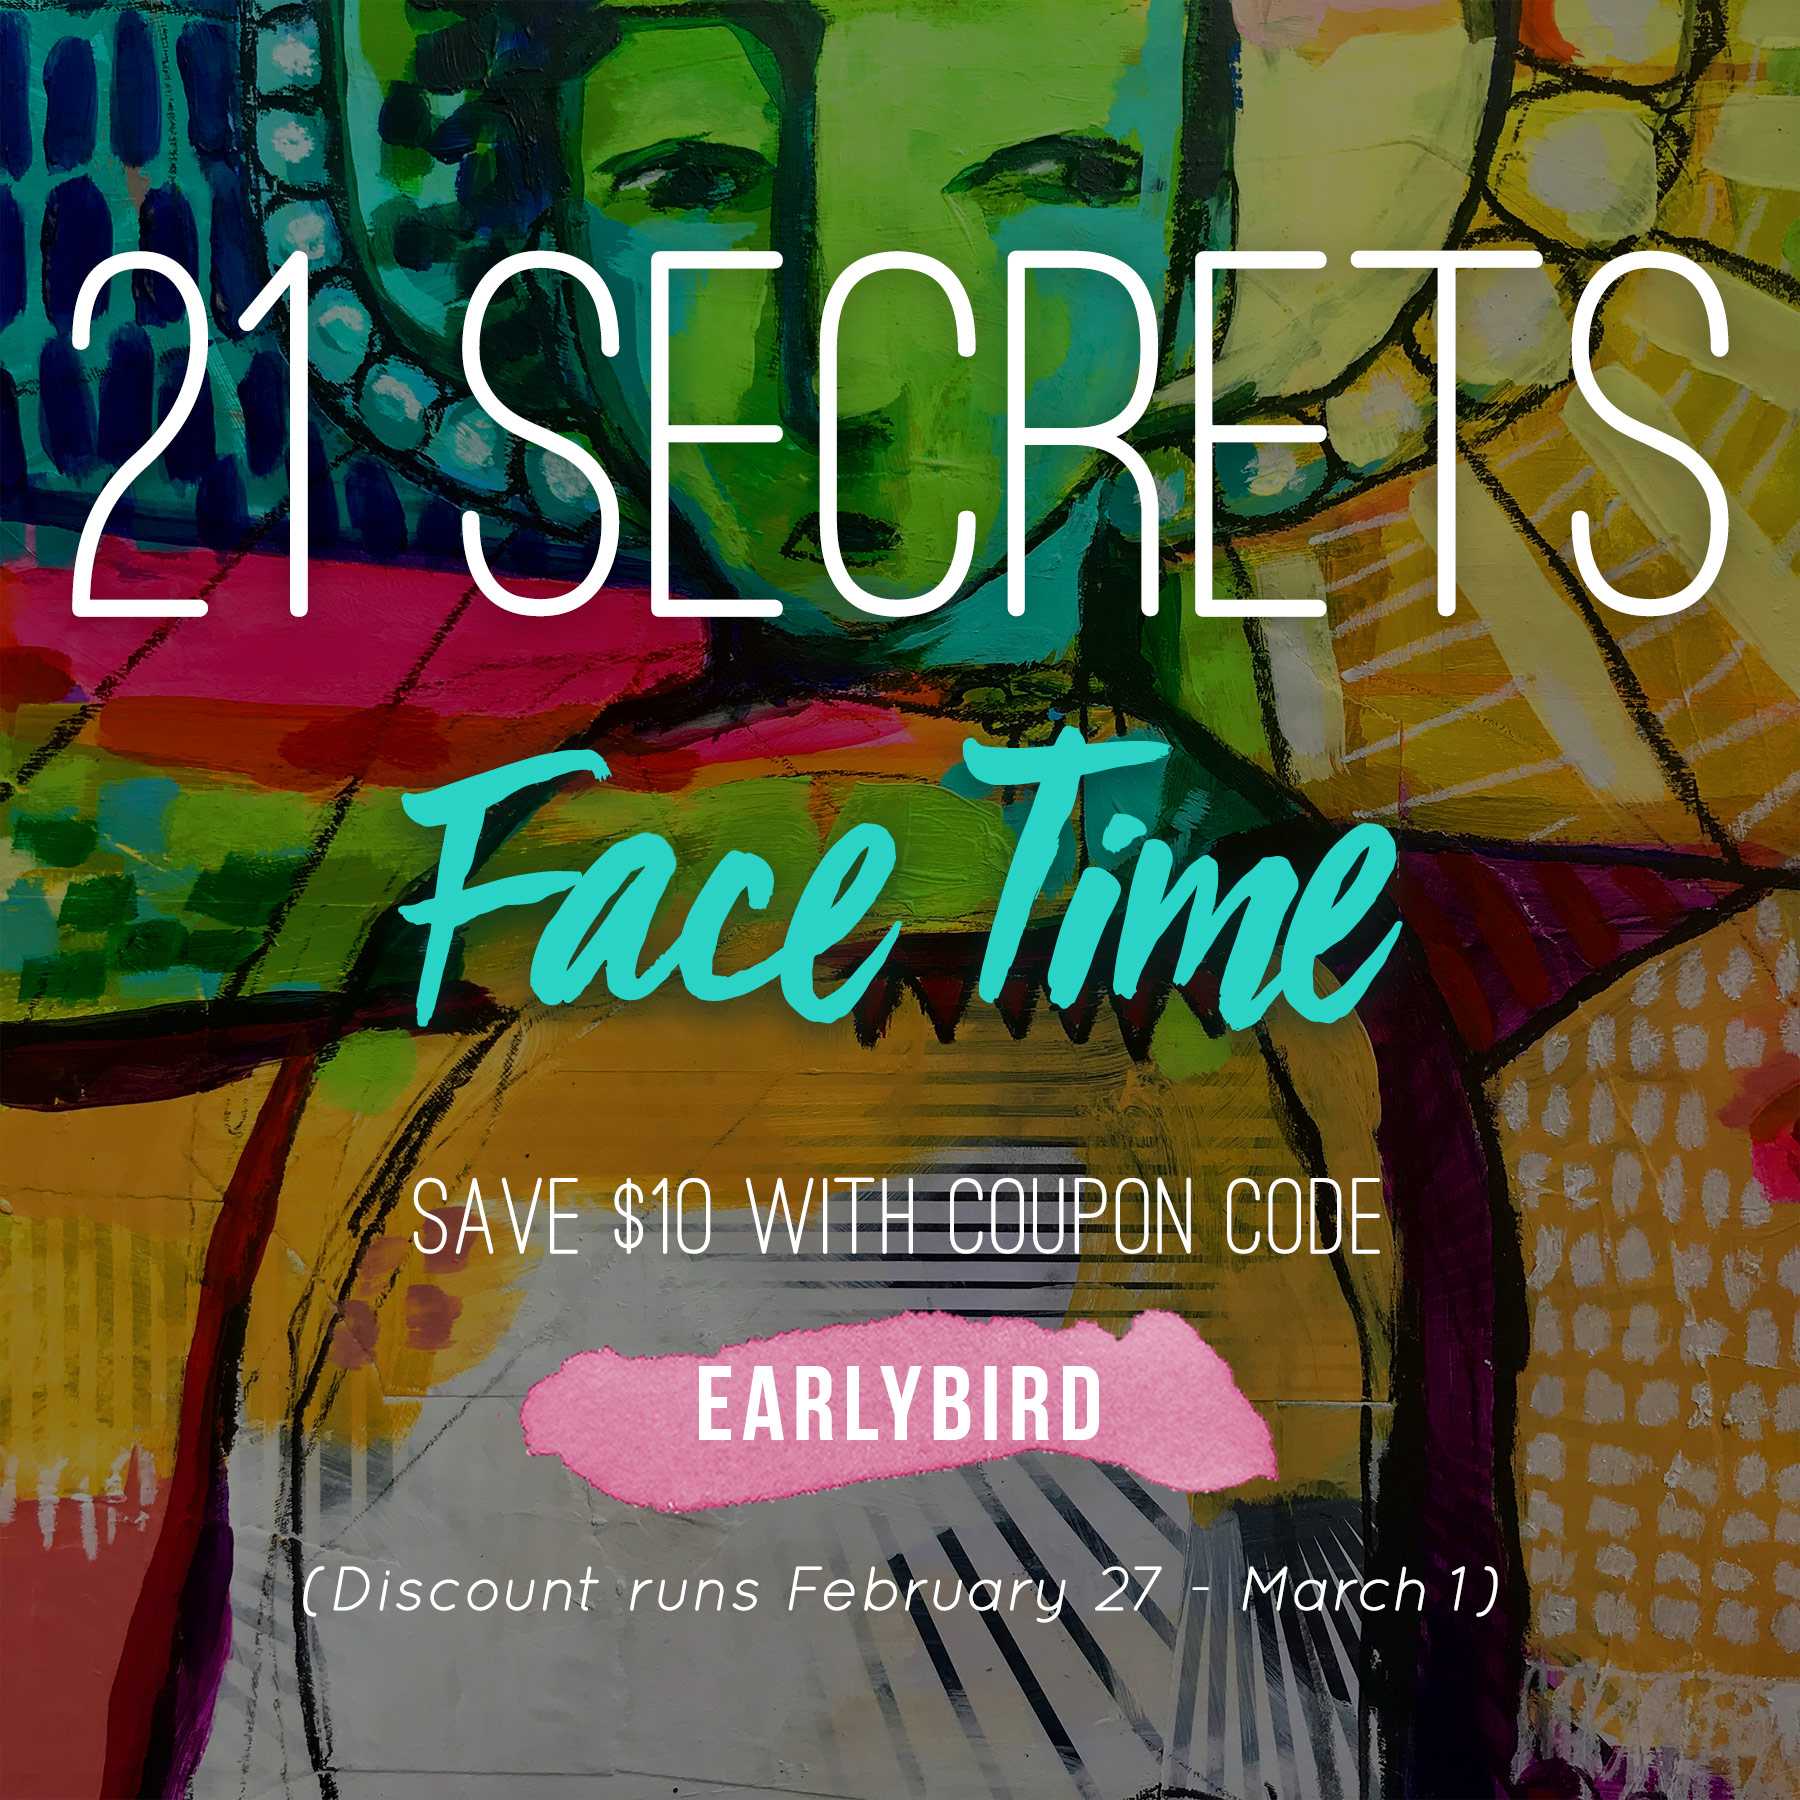 21 Secrets Face Time Kylie Fowler